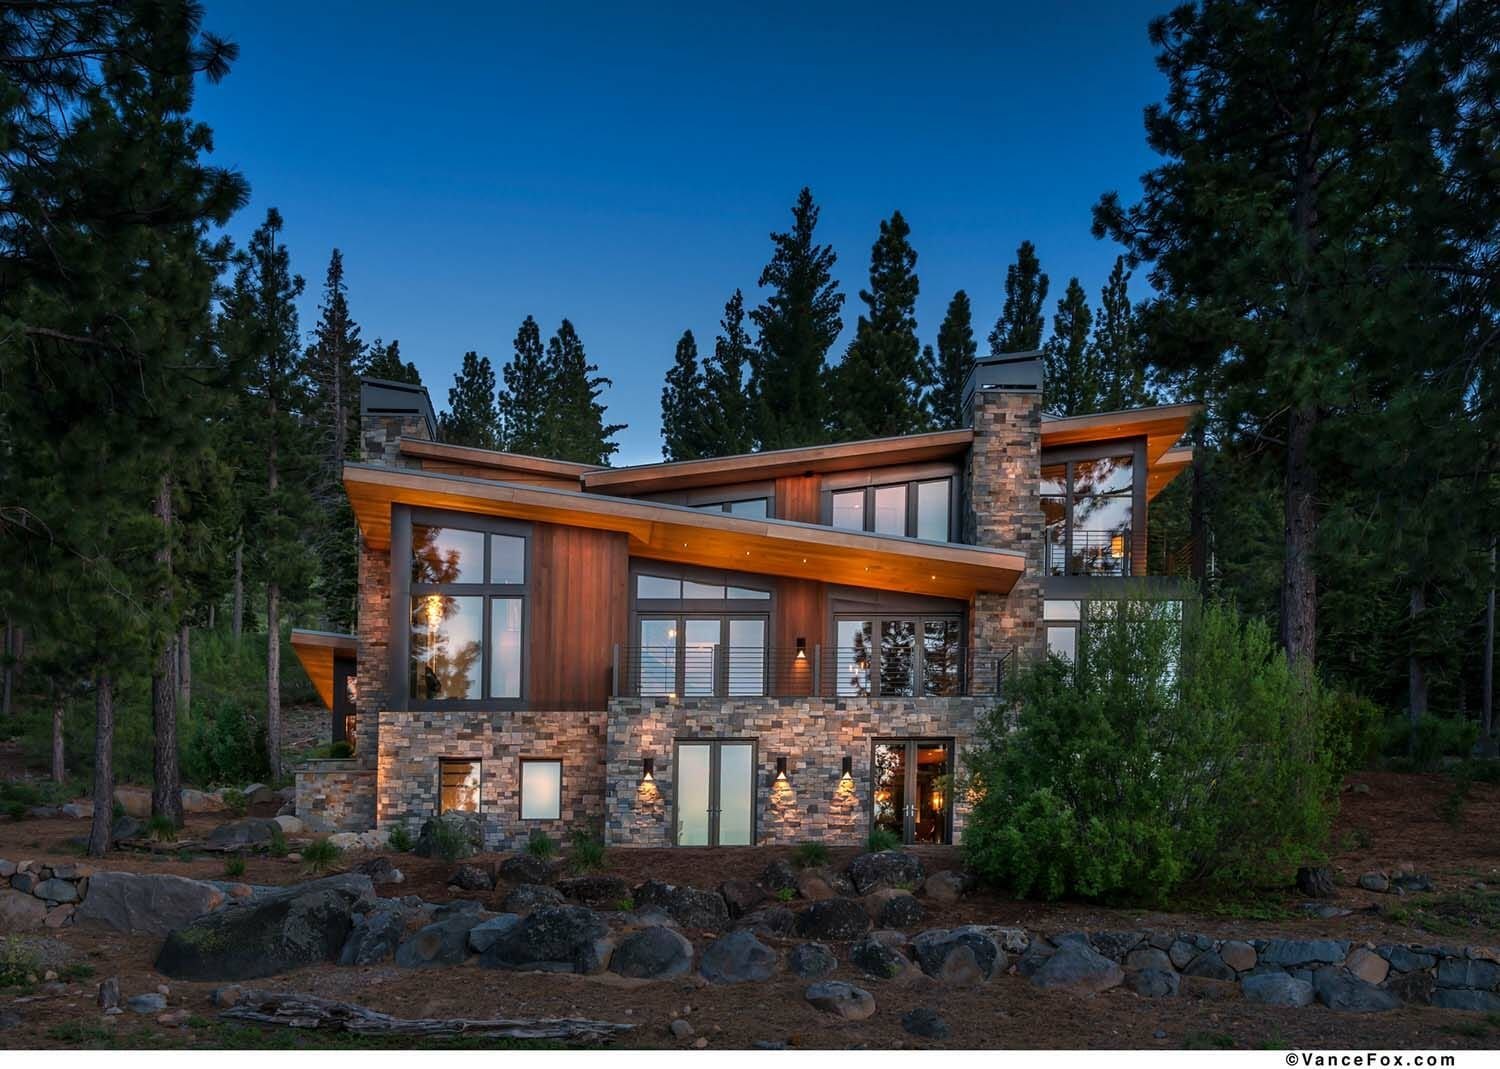 Northern California mountain retreat displays impressive ...